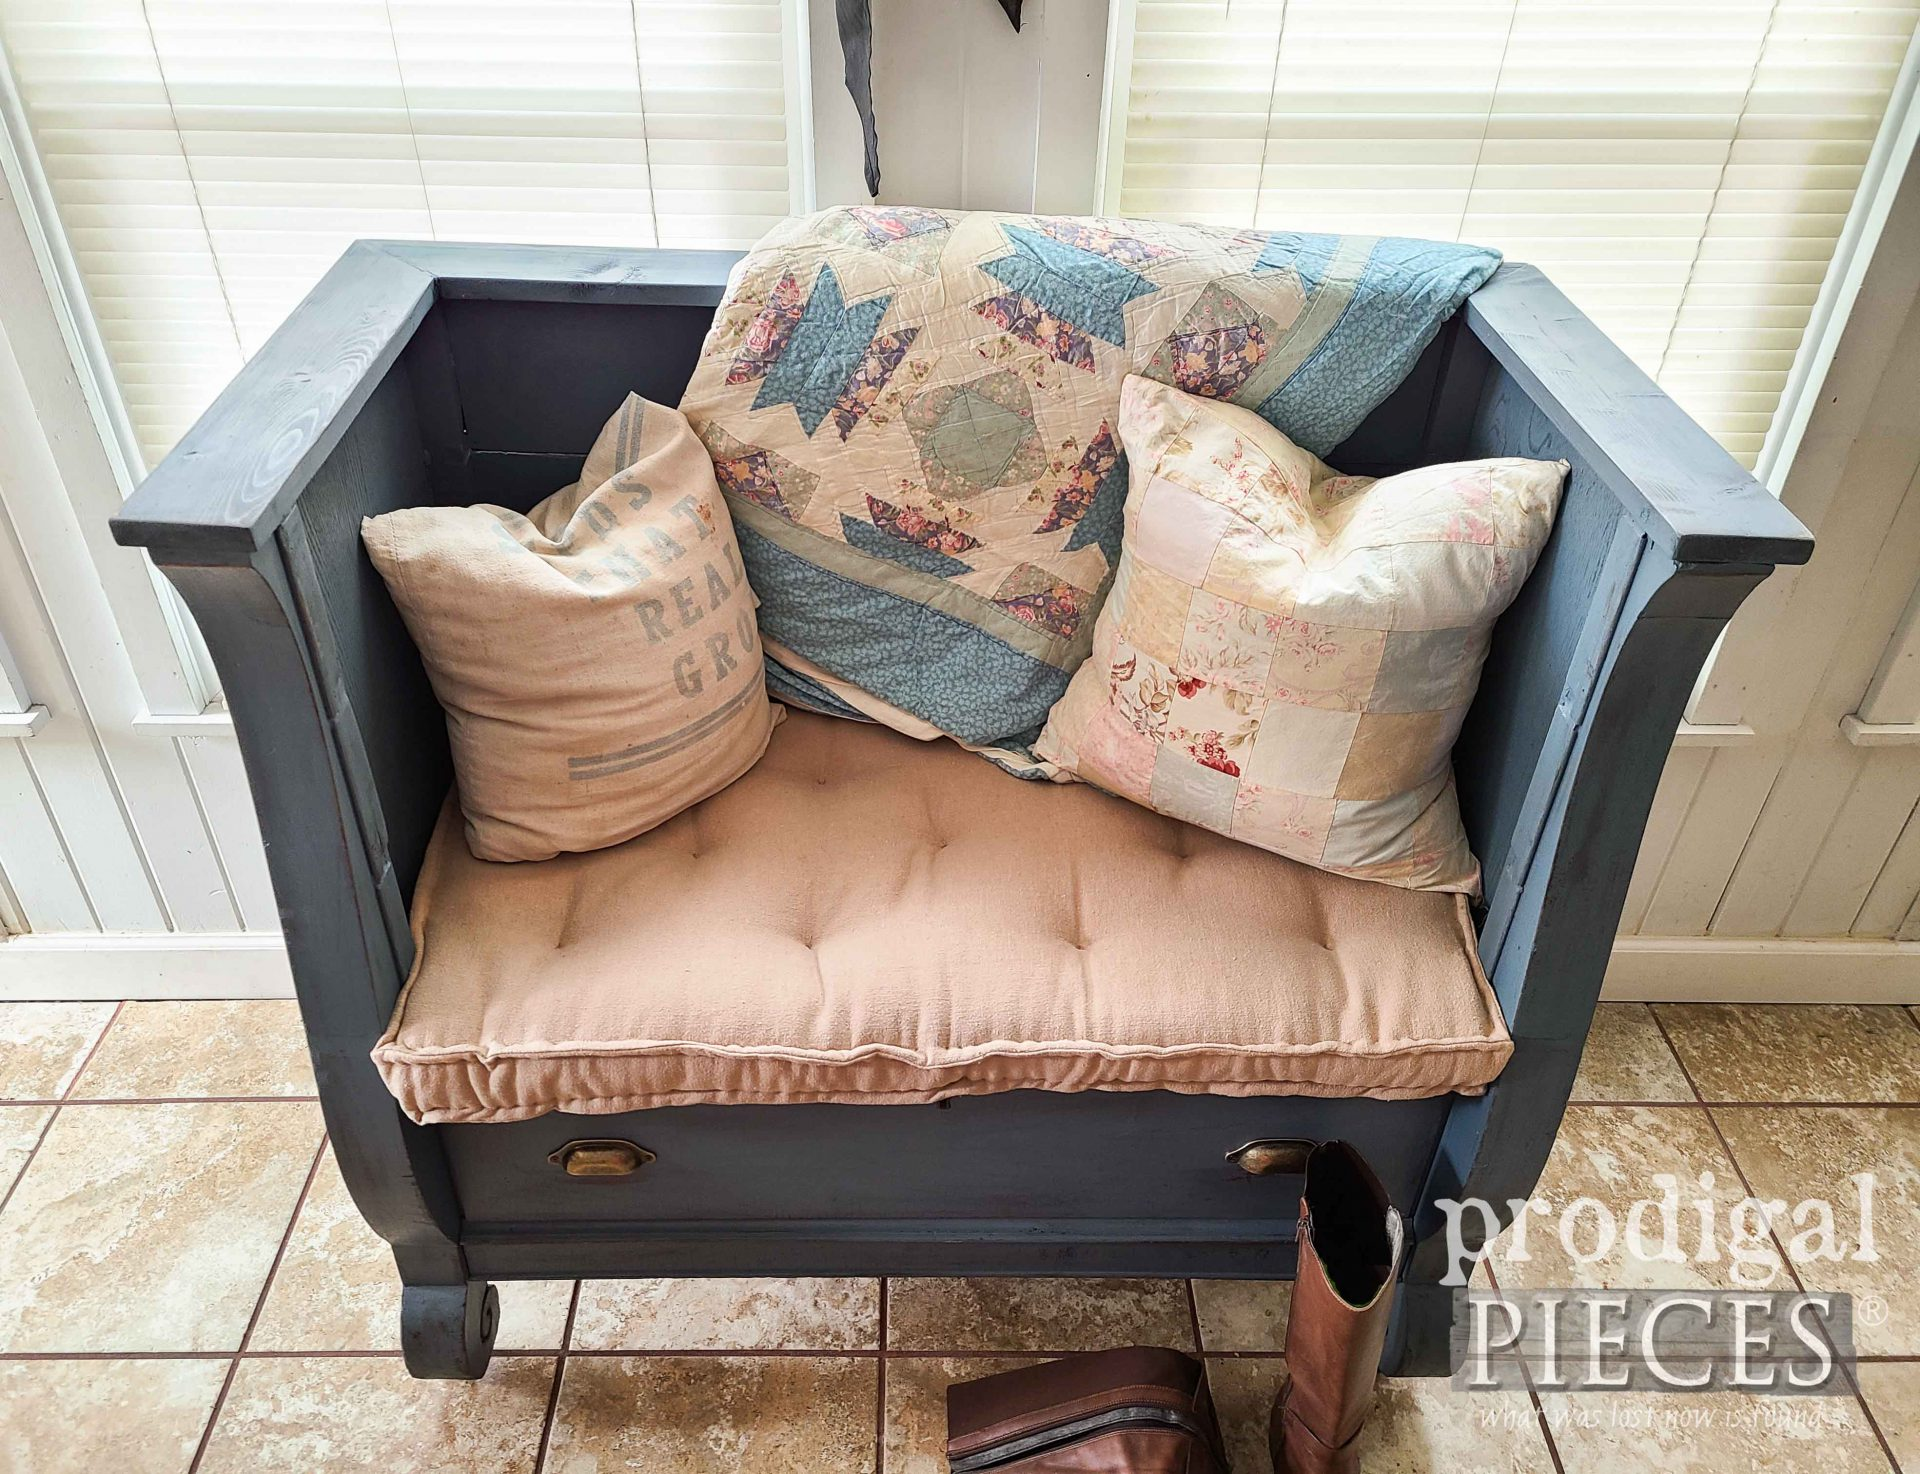 DIY Tufted French Mattress Sewn by Larissa of Prodigal Pieces | prodigalpieces.com #prodigalpieces #sewing #upholstery #furniture